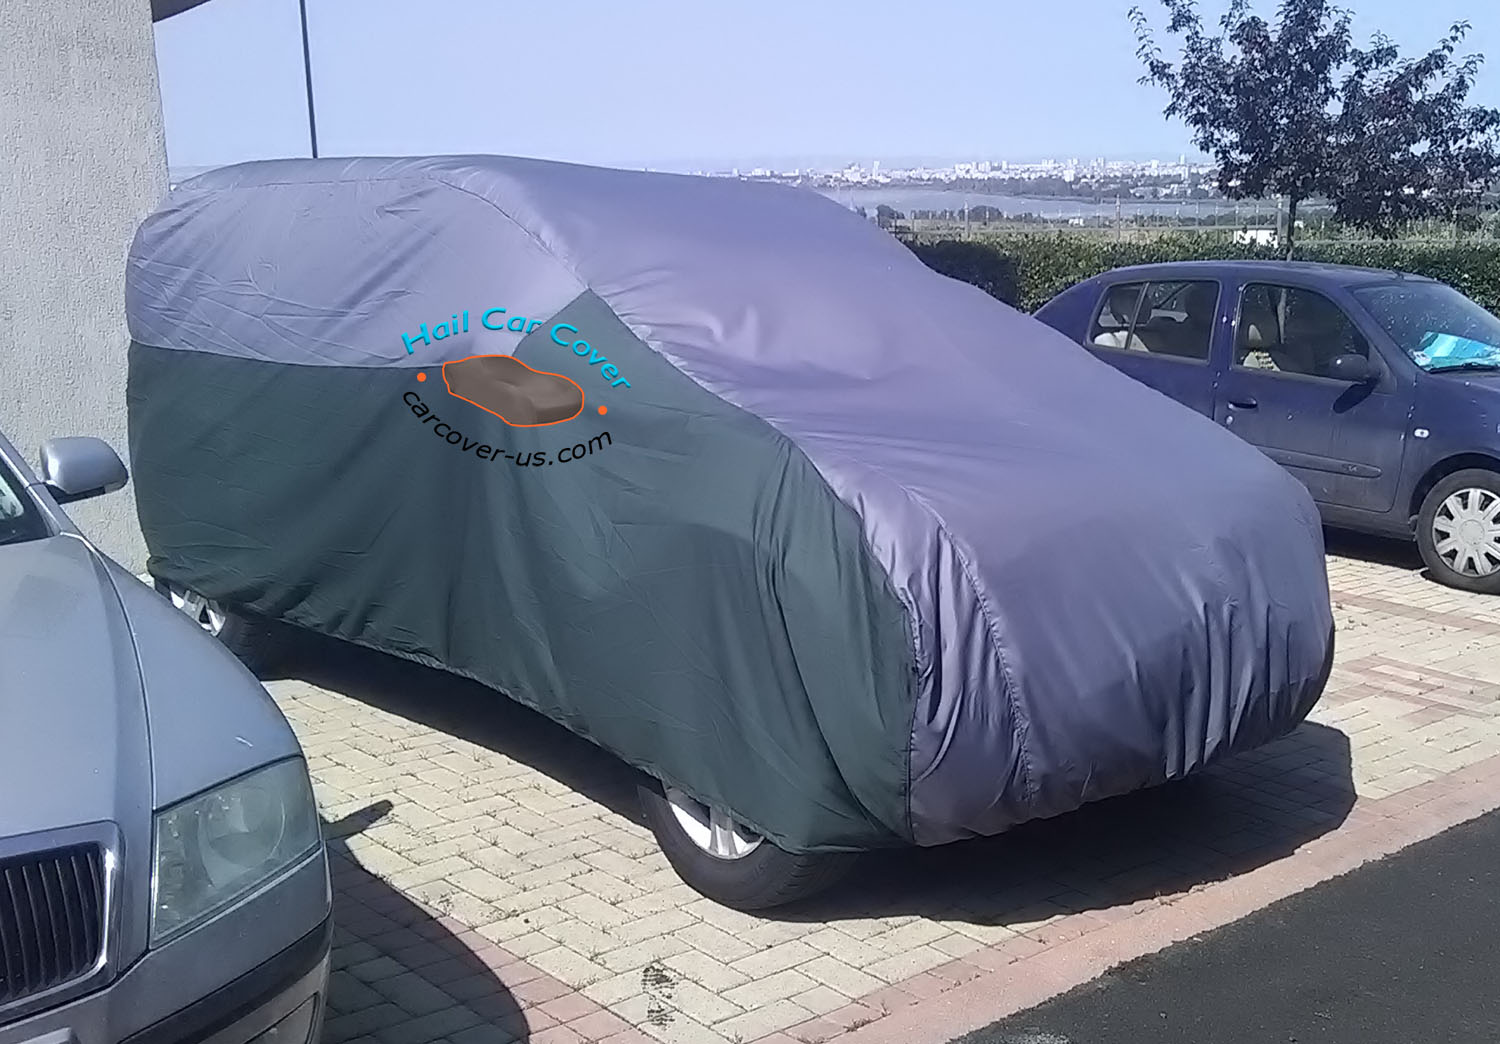 Hail Car Covers - the main purpose